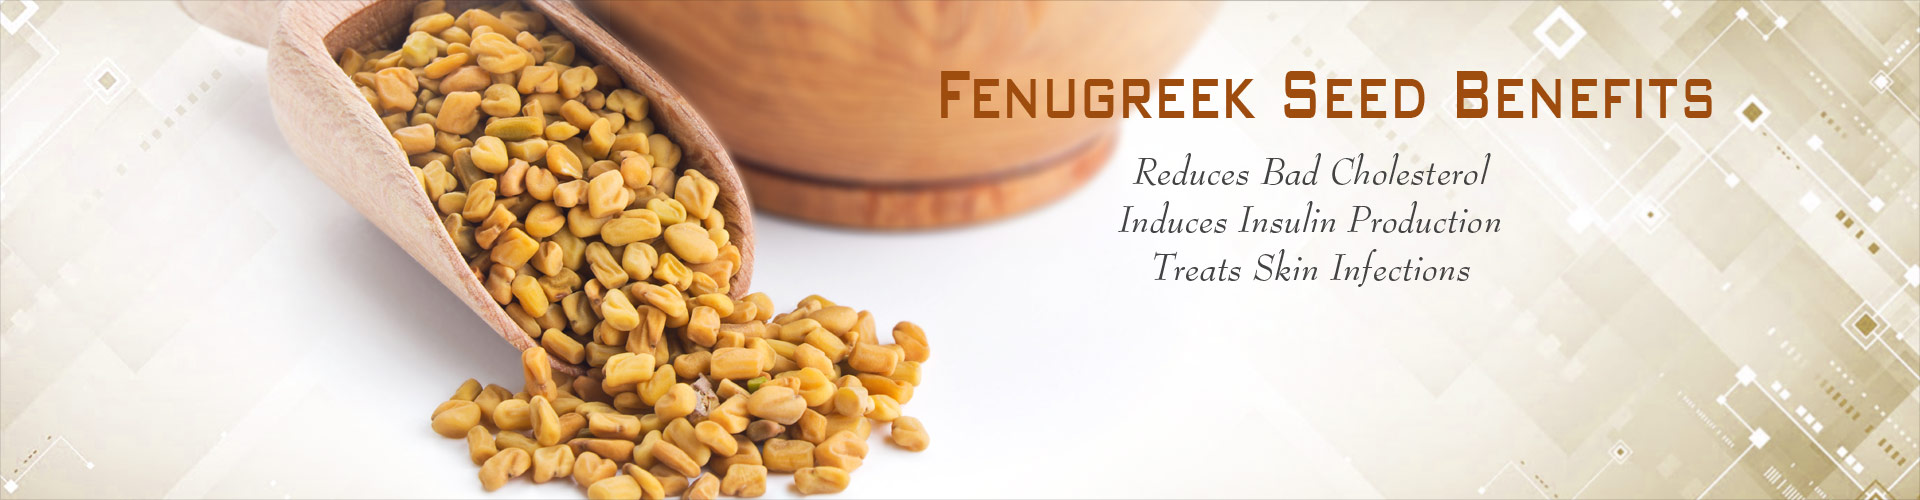 Fenugreek Seed Benefits - Reduces Bad Cholestrol, Induces Insulin Production, Treats Skin Infections